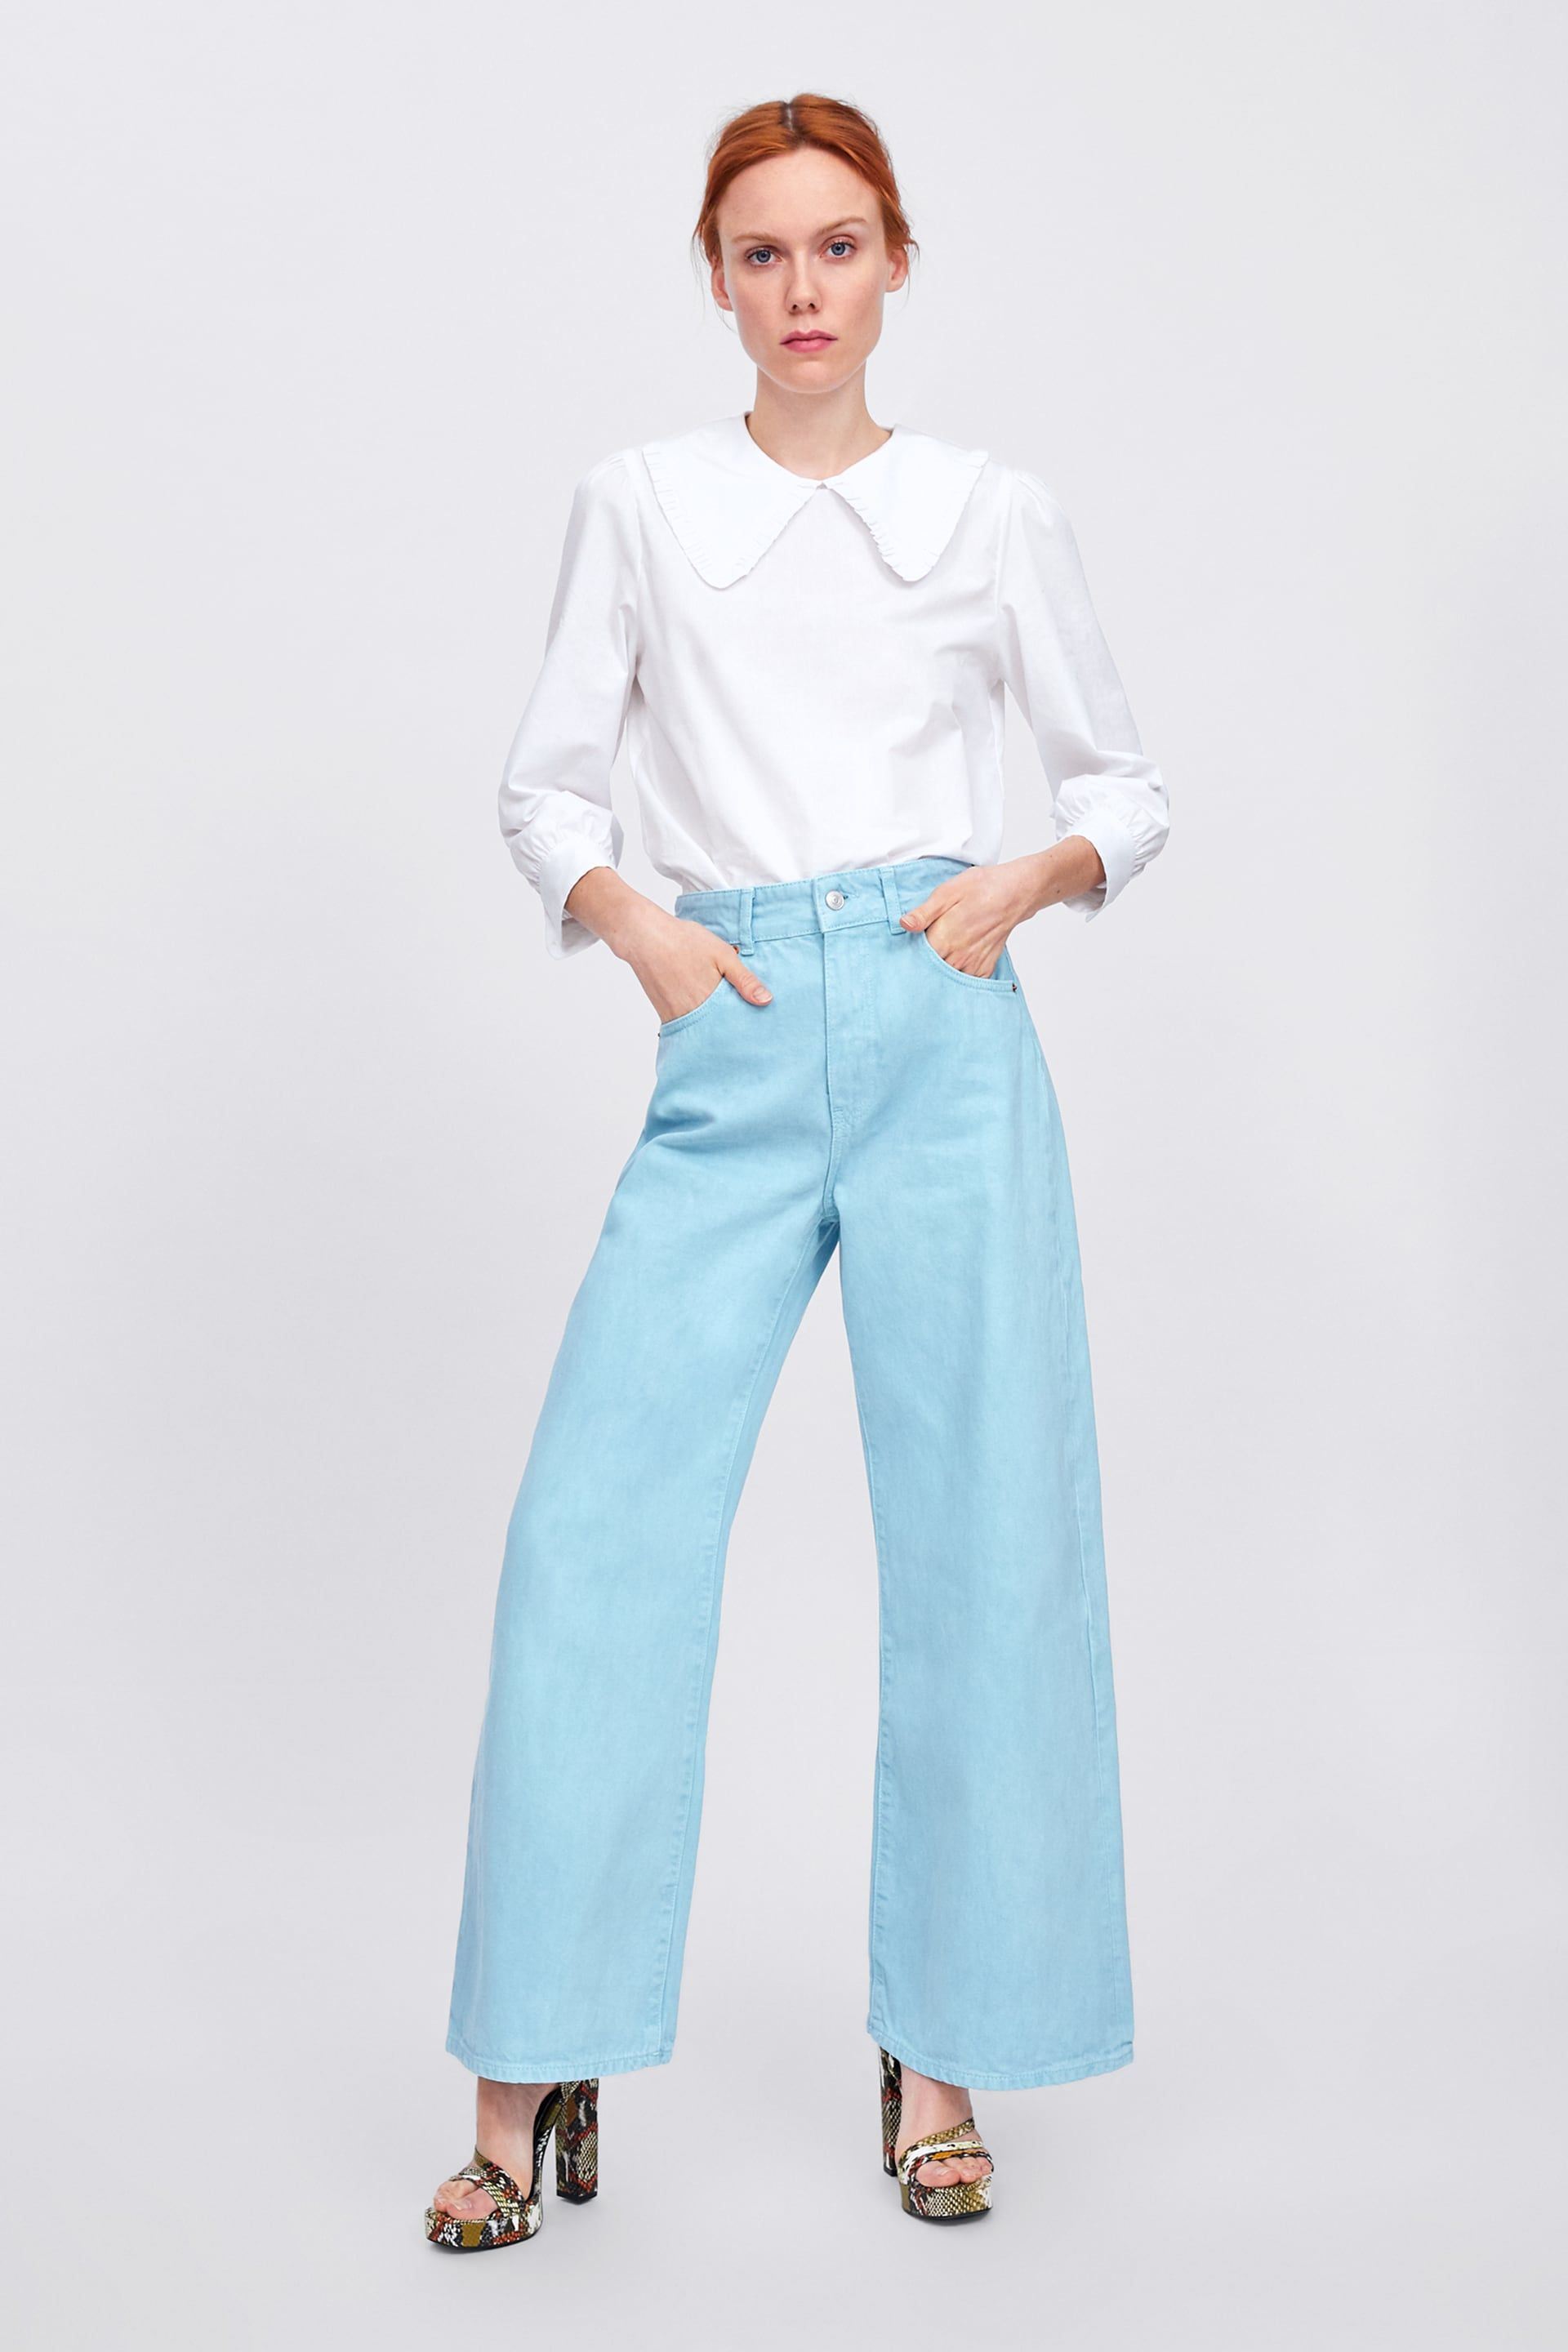 Zw Premium Marine Straight Jeans In Mellow Blue View All Jeans Woman Zara United States Straight Jeans Fashion Moda Fashion